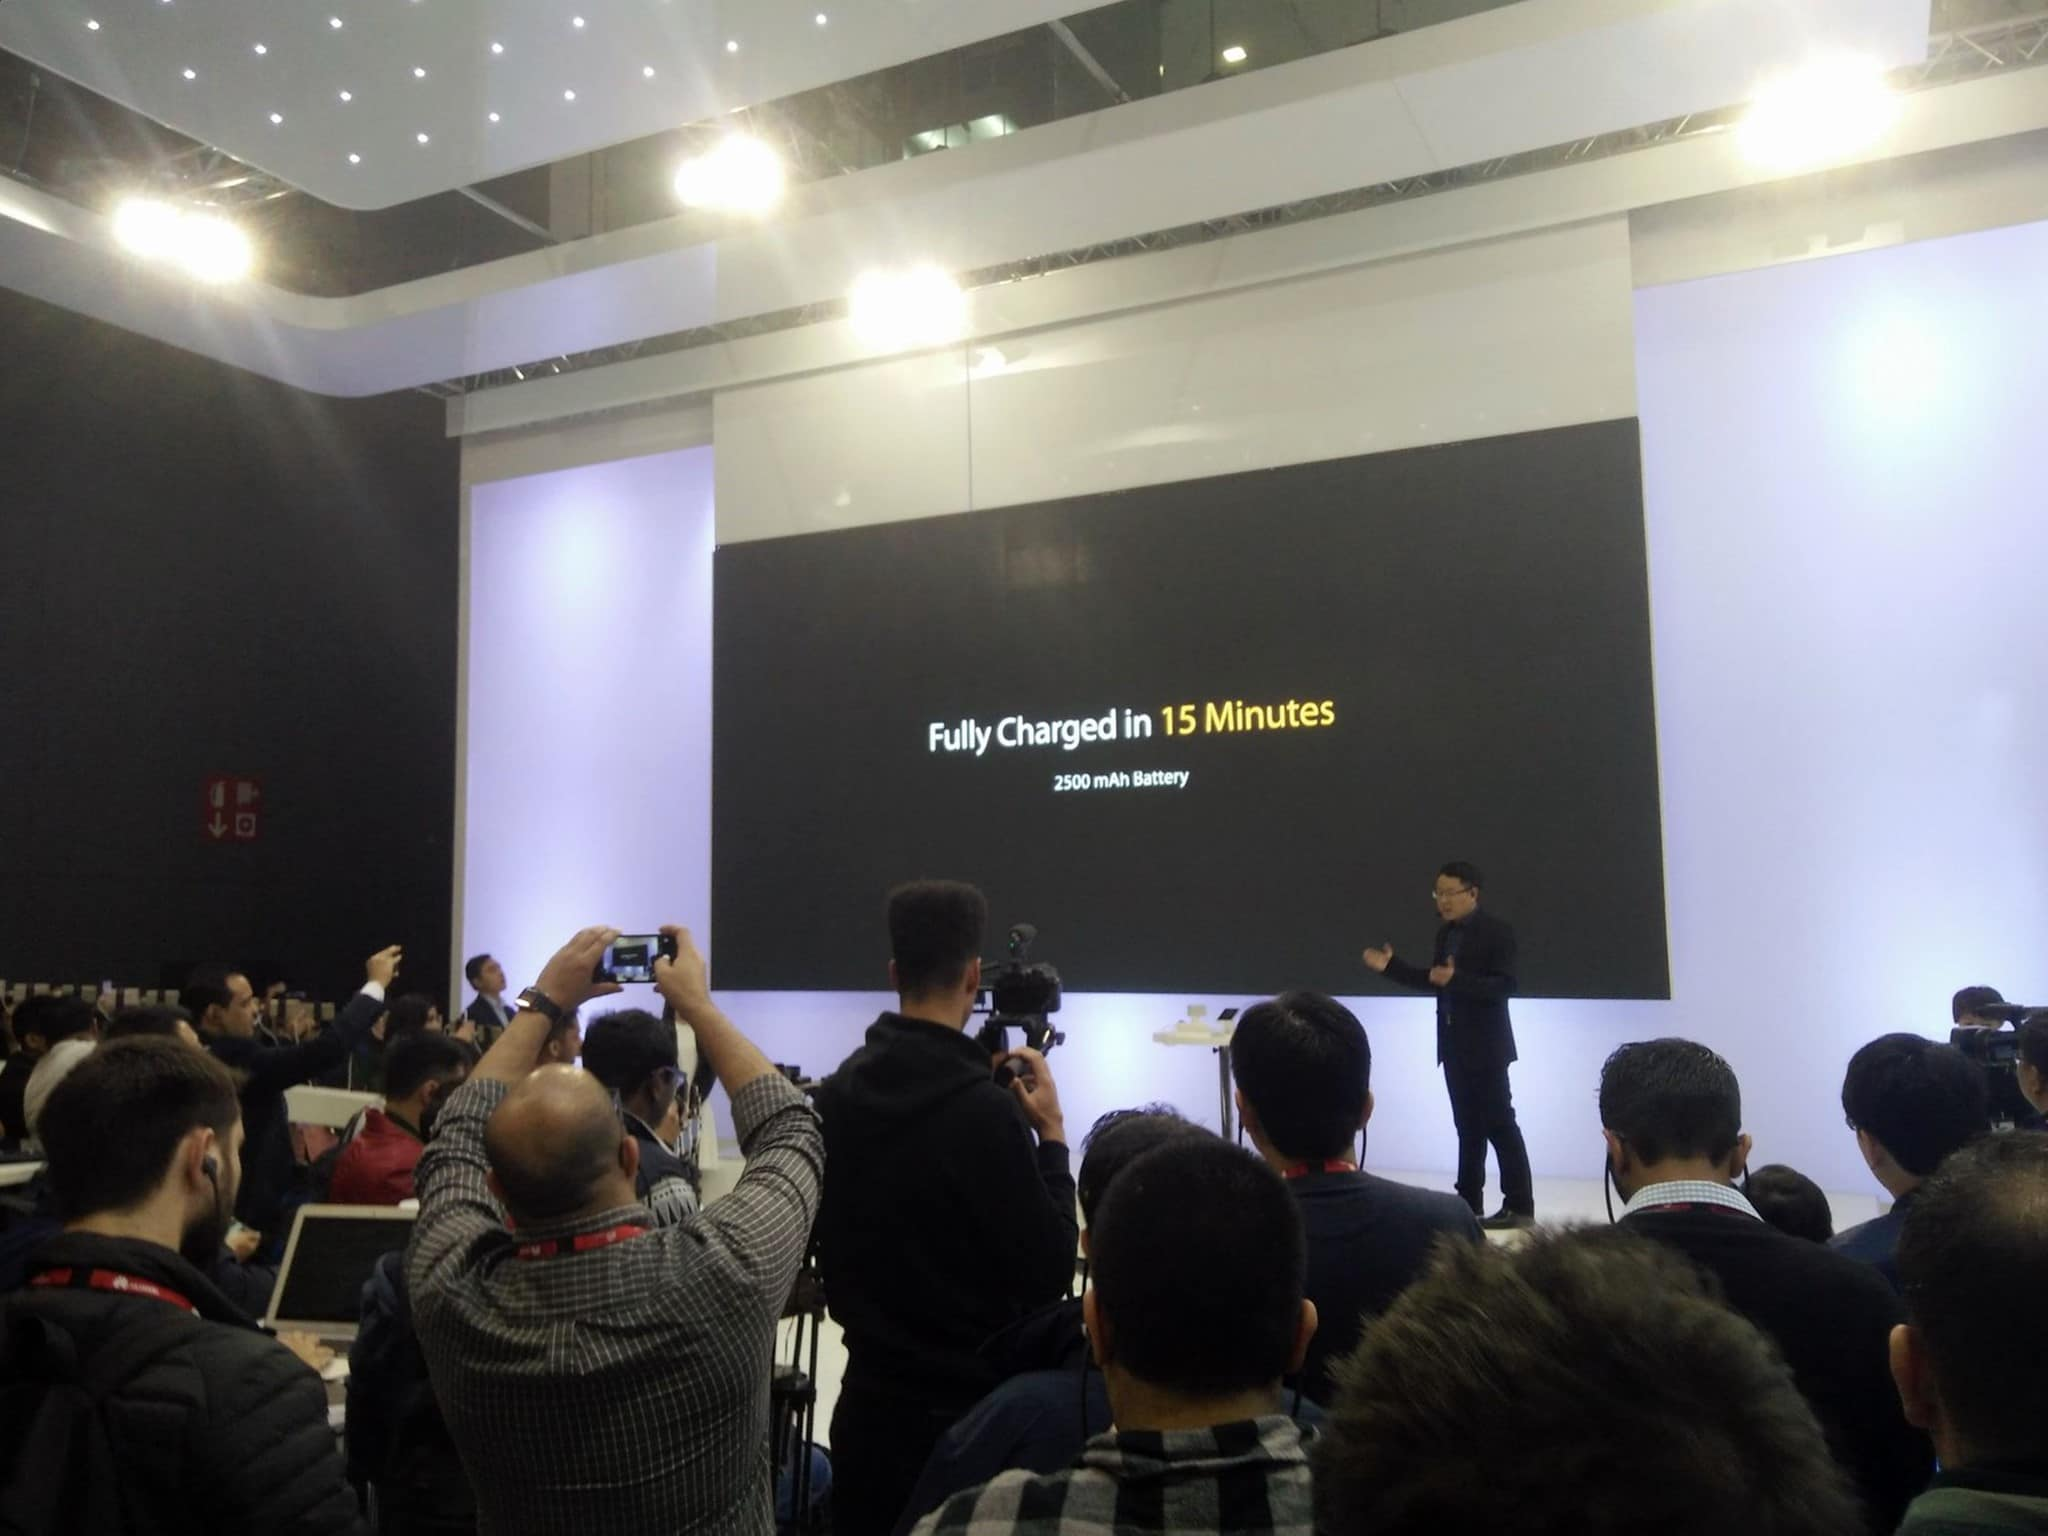 A Fully Charged Phone In 15 Mins Oppo S Mwc 2016 Announcement Is Win For All